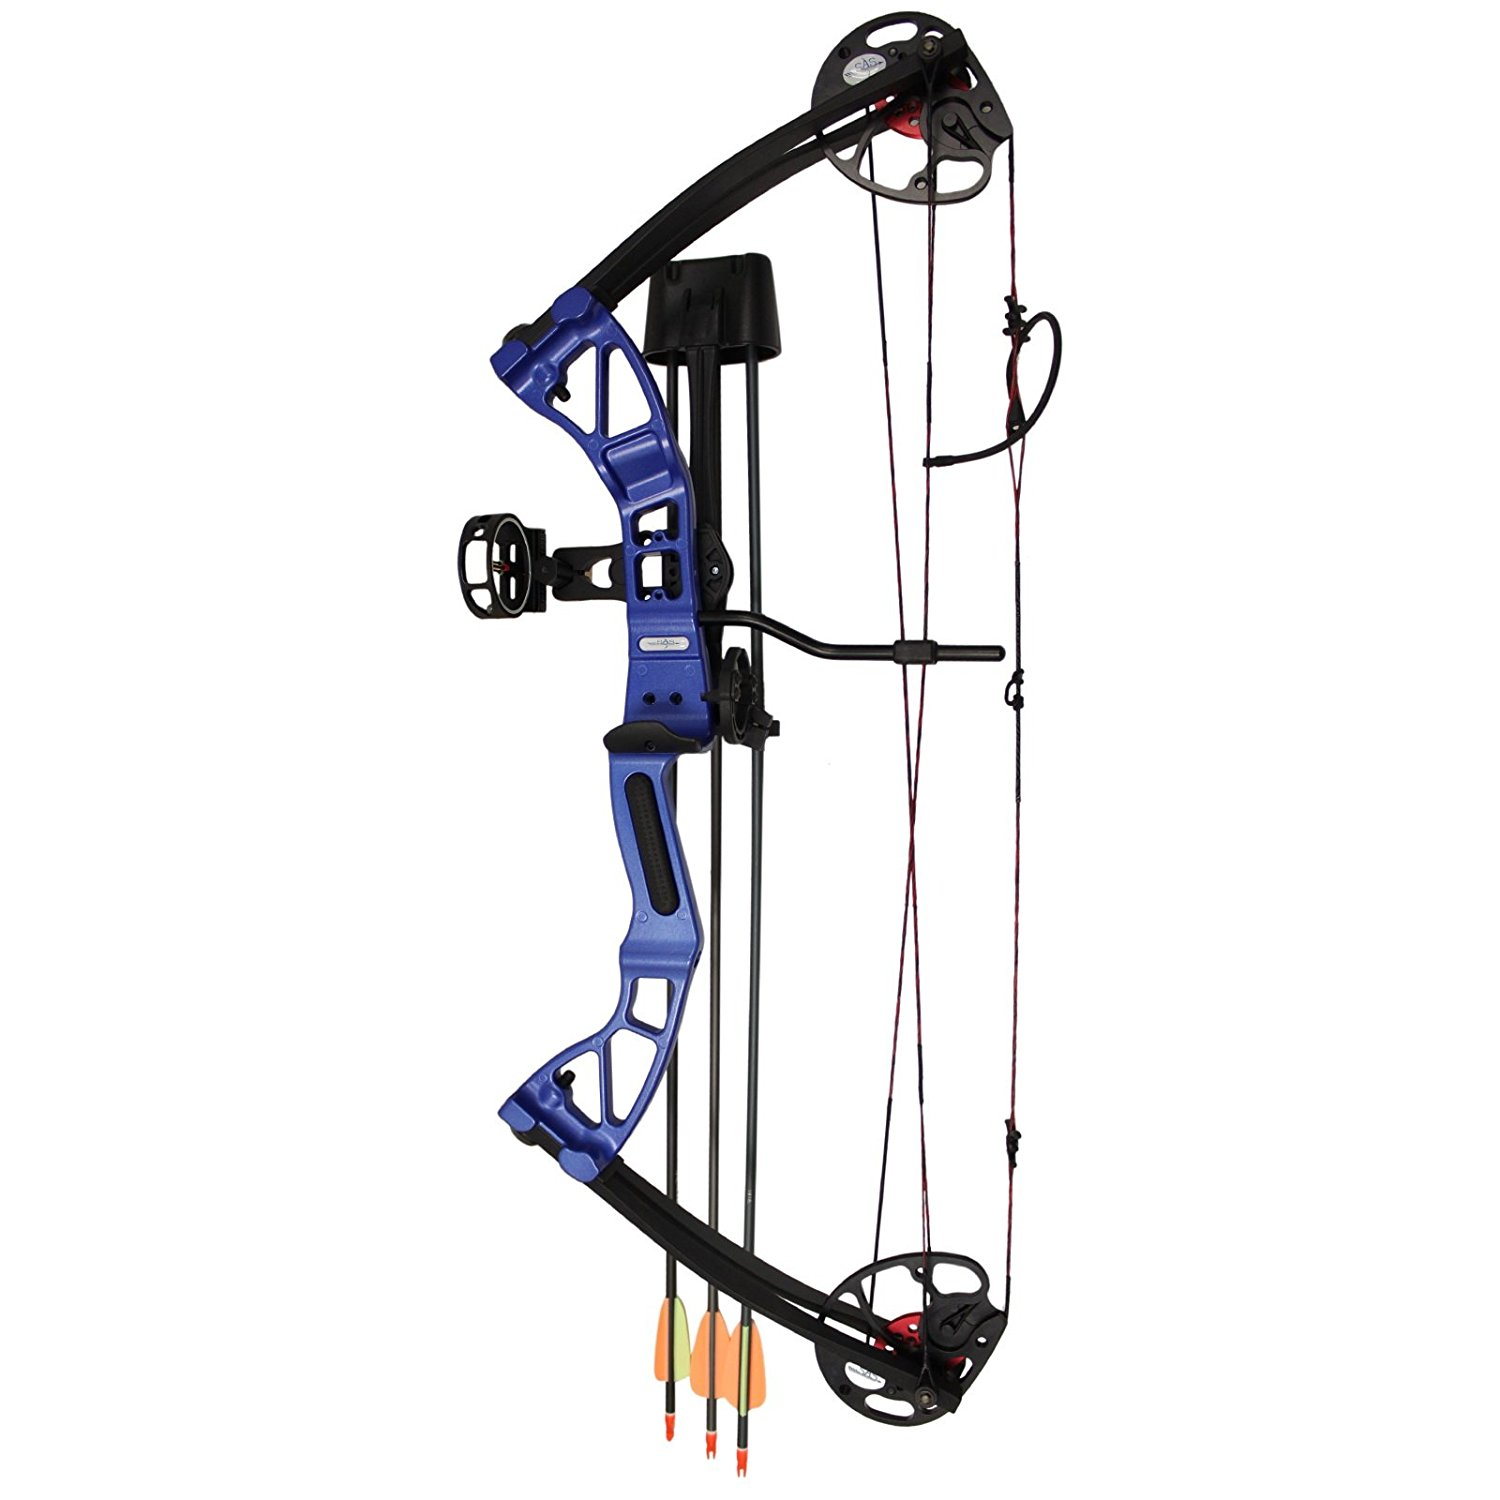 0.029/'/' 3 Pin Fiber Optic Arrow Bow Sight fit Compound Bow Archery Hunting Peep